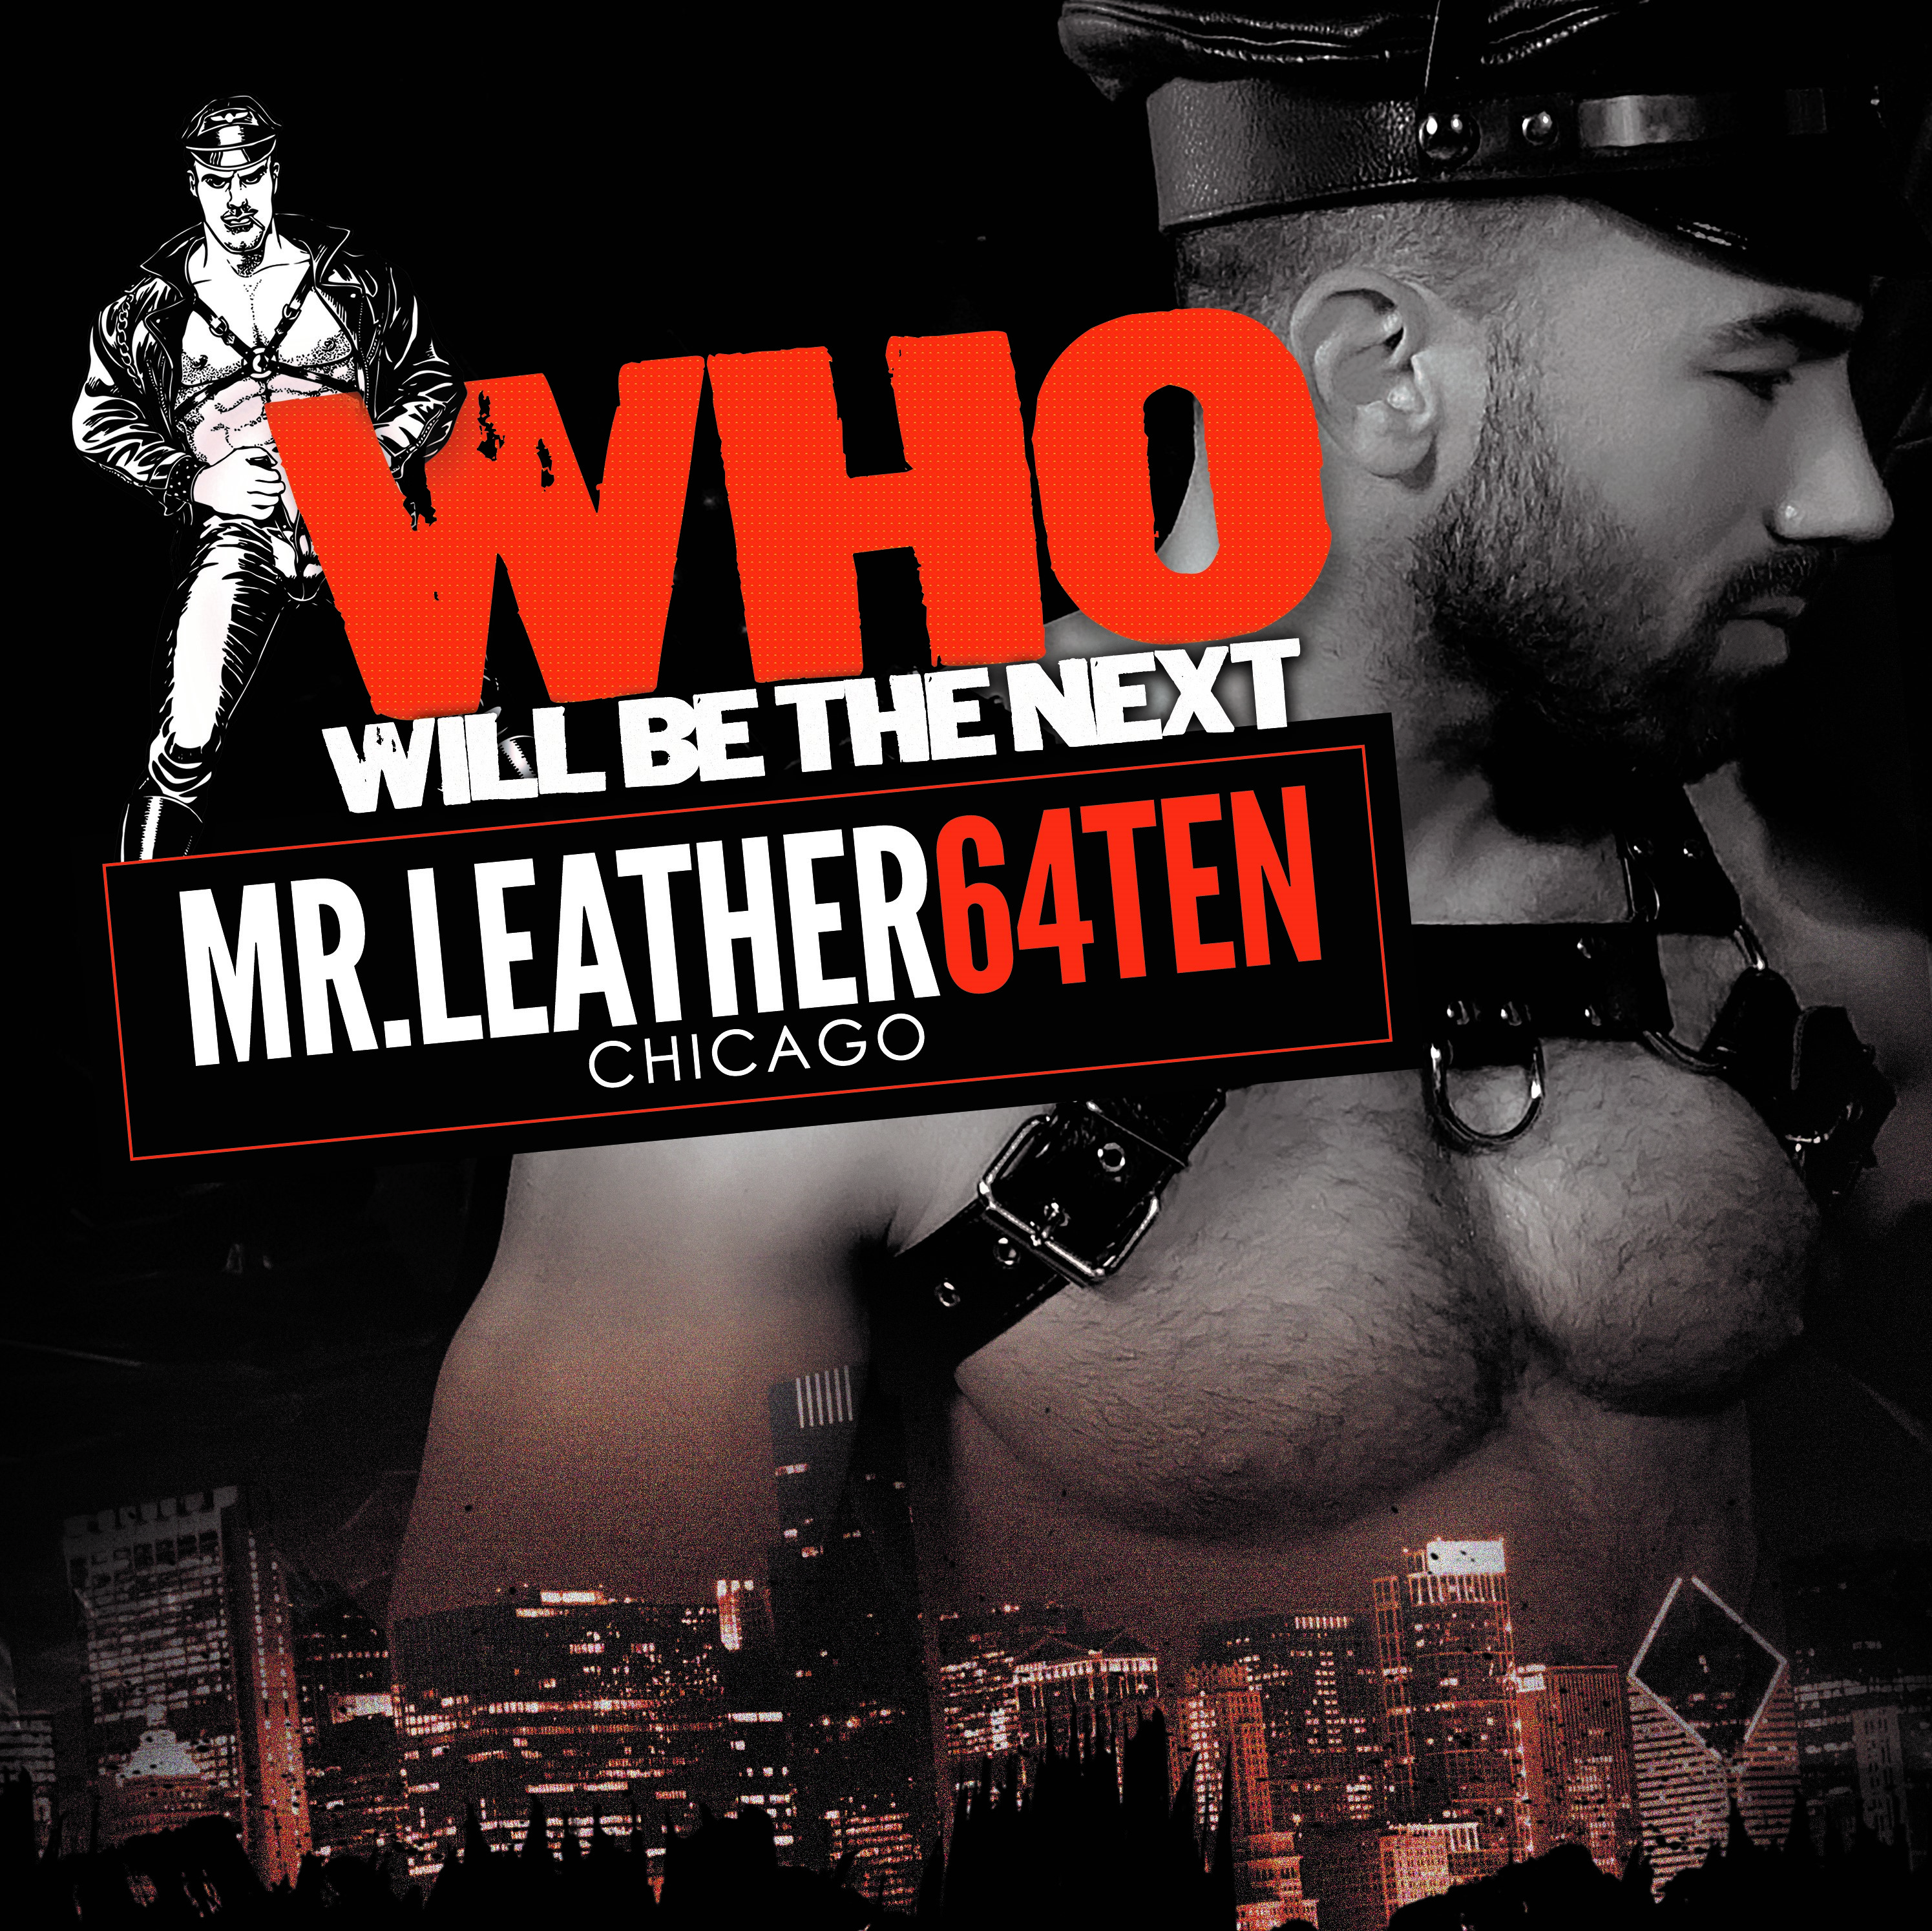 who will be the next MR.LEATHER64TEN